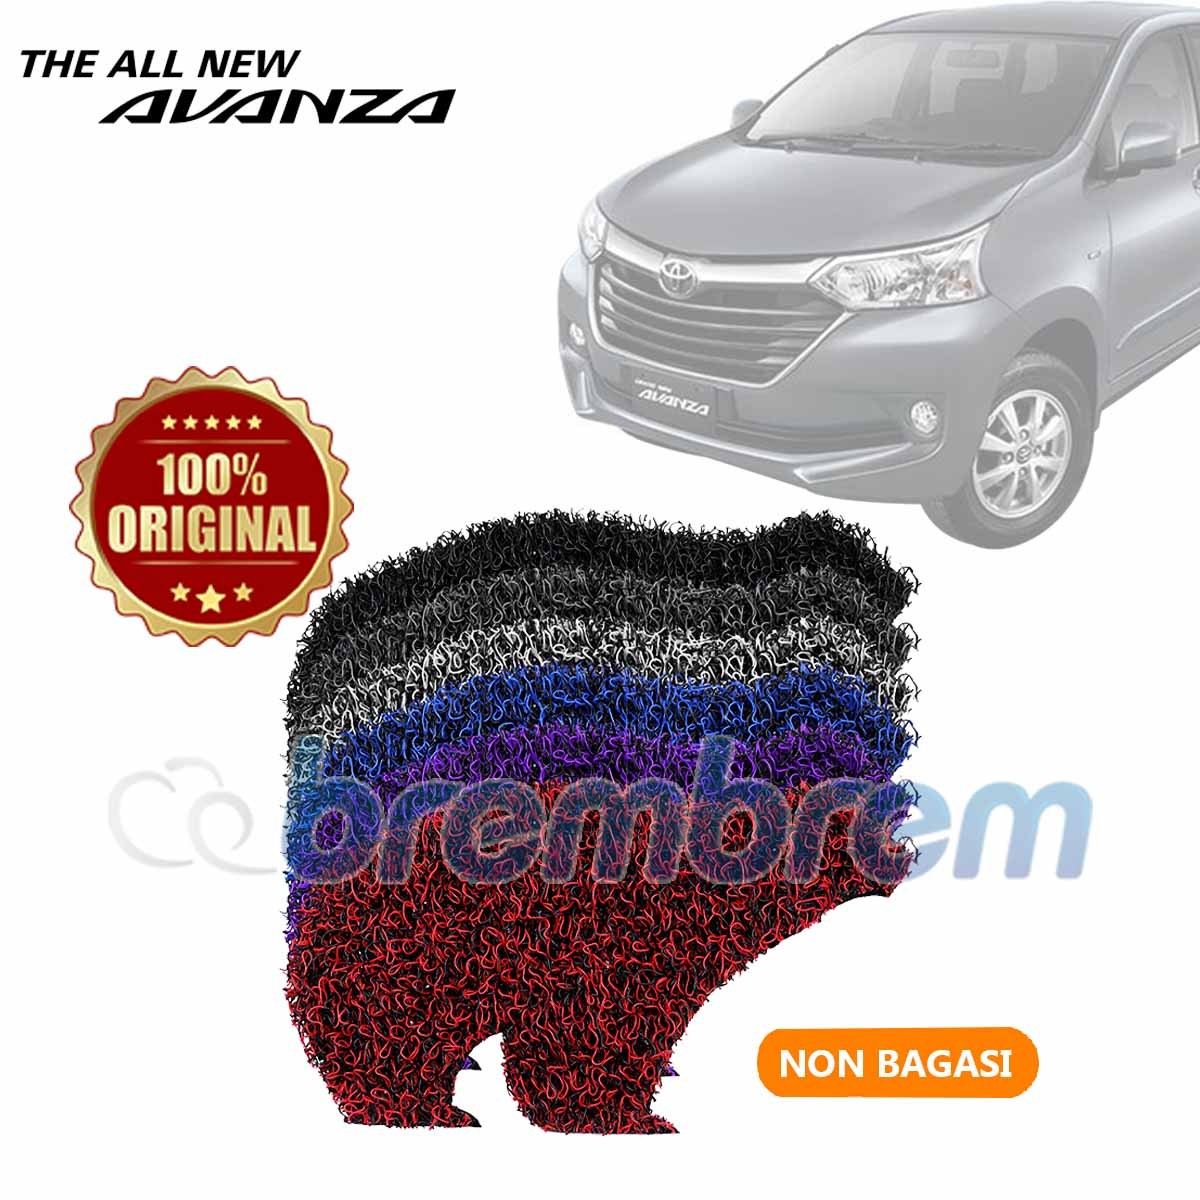 KARPET FIRST CLASS NON BAGASI TOYOTA AVANZA